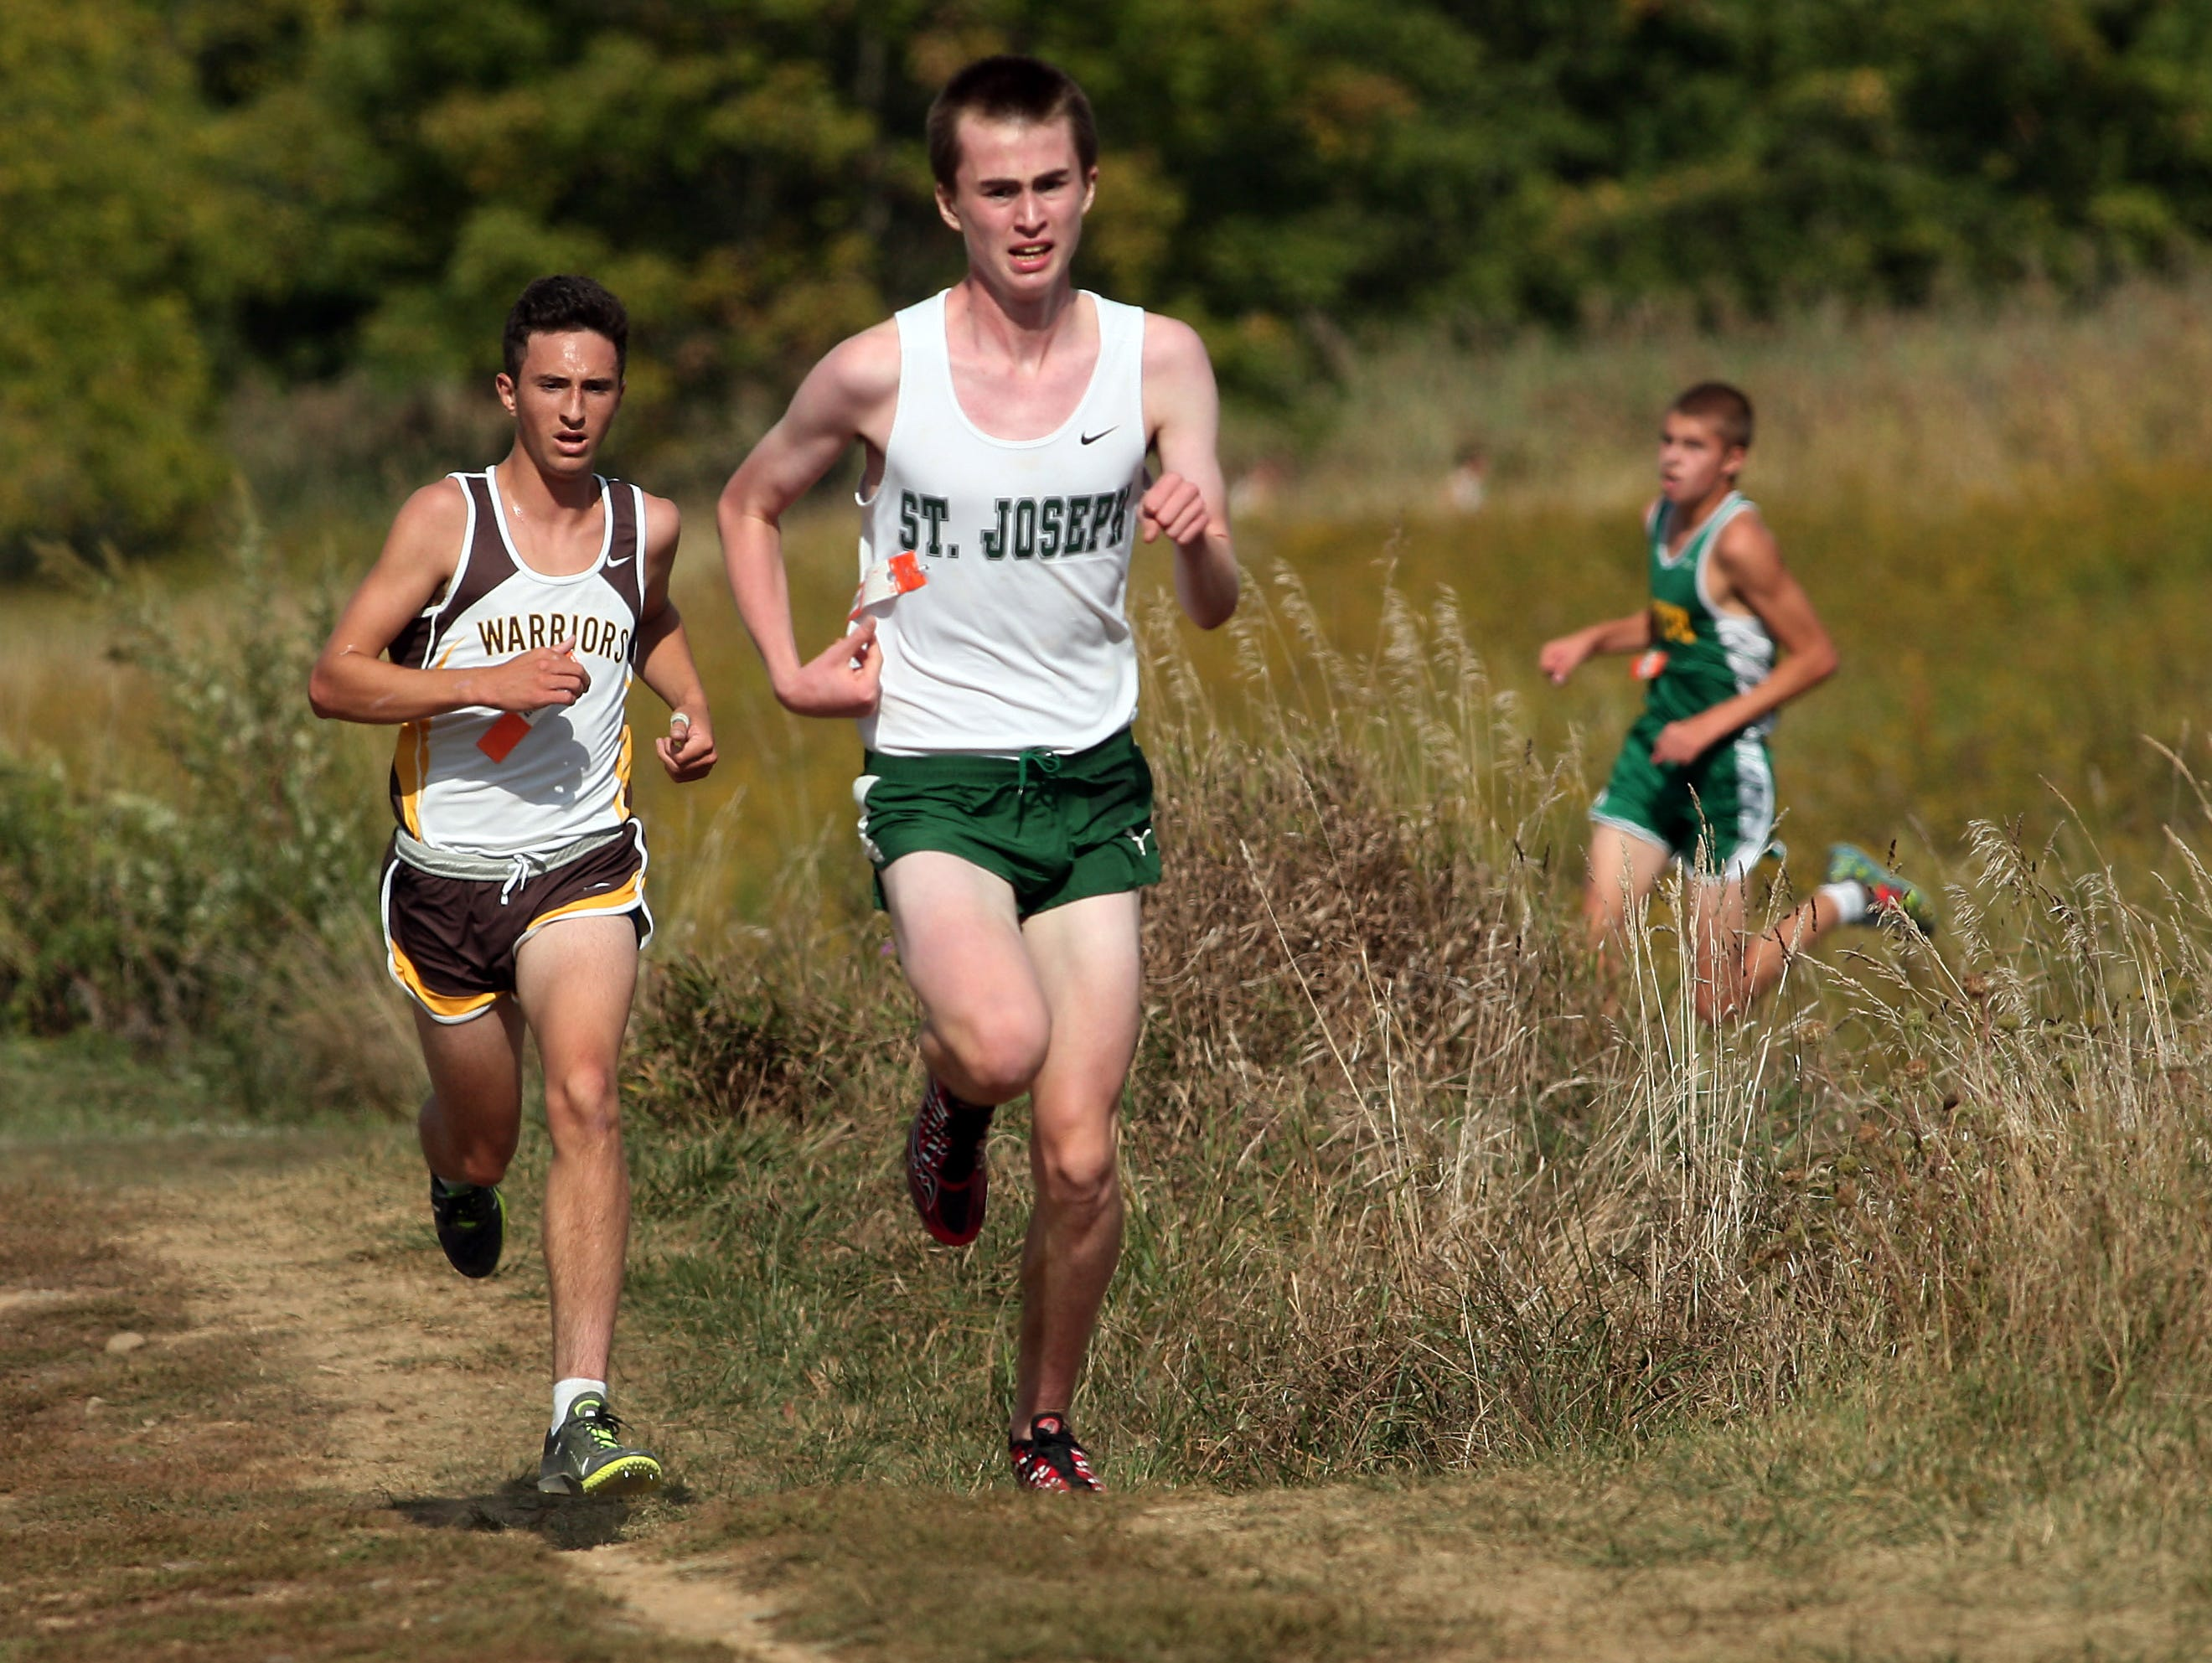 St Joseph's Dylan Tyrell leads Watchung's Ryan Martins during the Varsity boys A 5K run of the Stewart Memorial Invitational at Central Park of Morris County. September 26, 2015, Morris Plains, NJ.